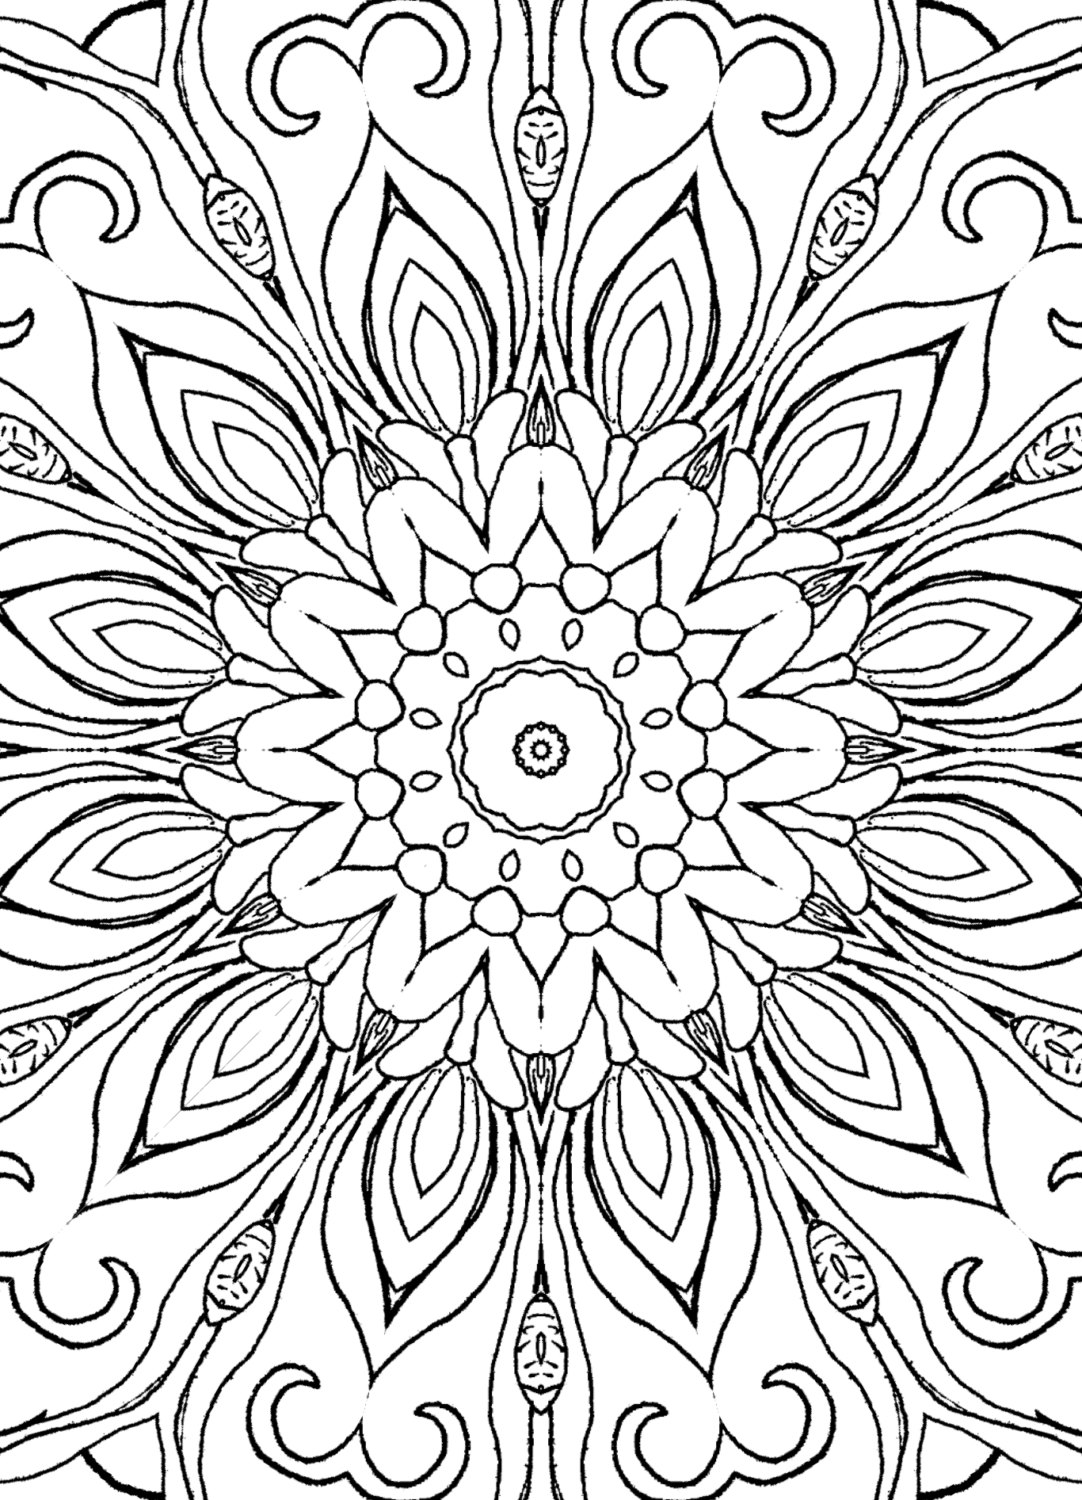 designs coloring pages 14 best images about adult coloring pages on pinterest designs pages coloring